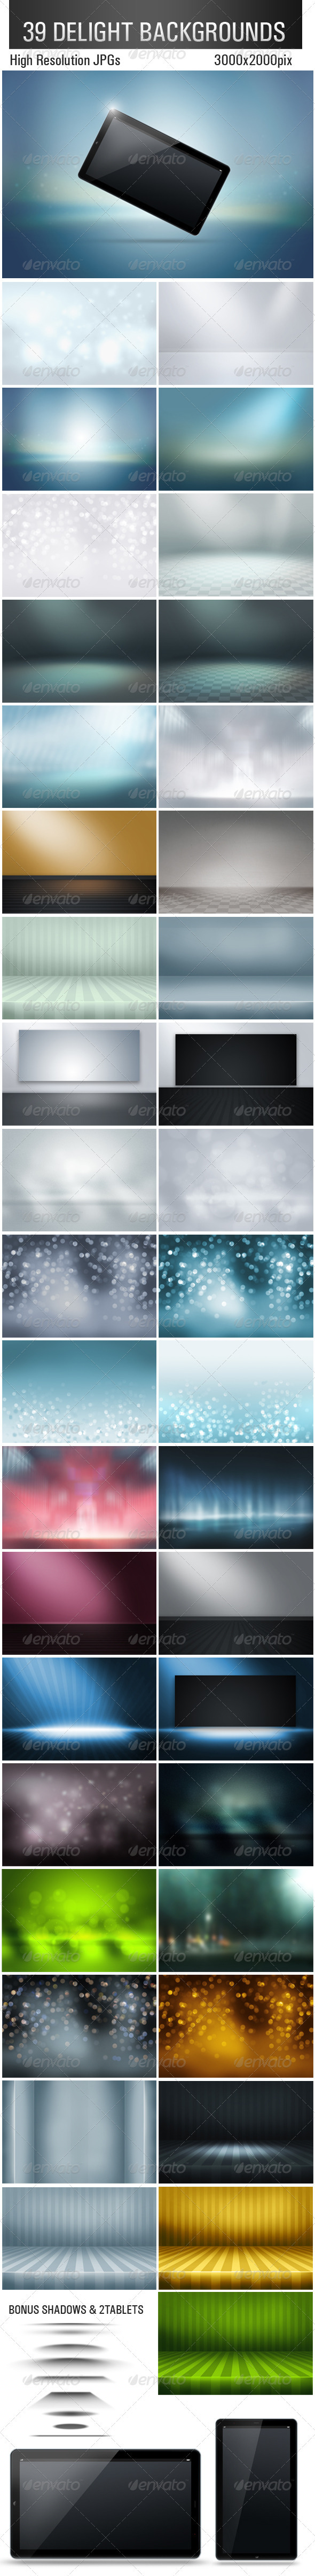 39 Delight Backgrounds - Abstract Backgrounds